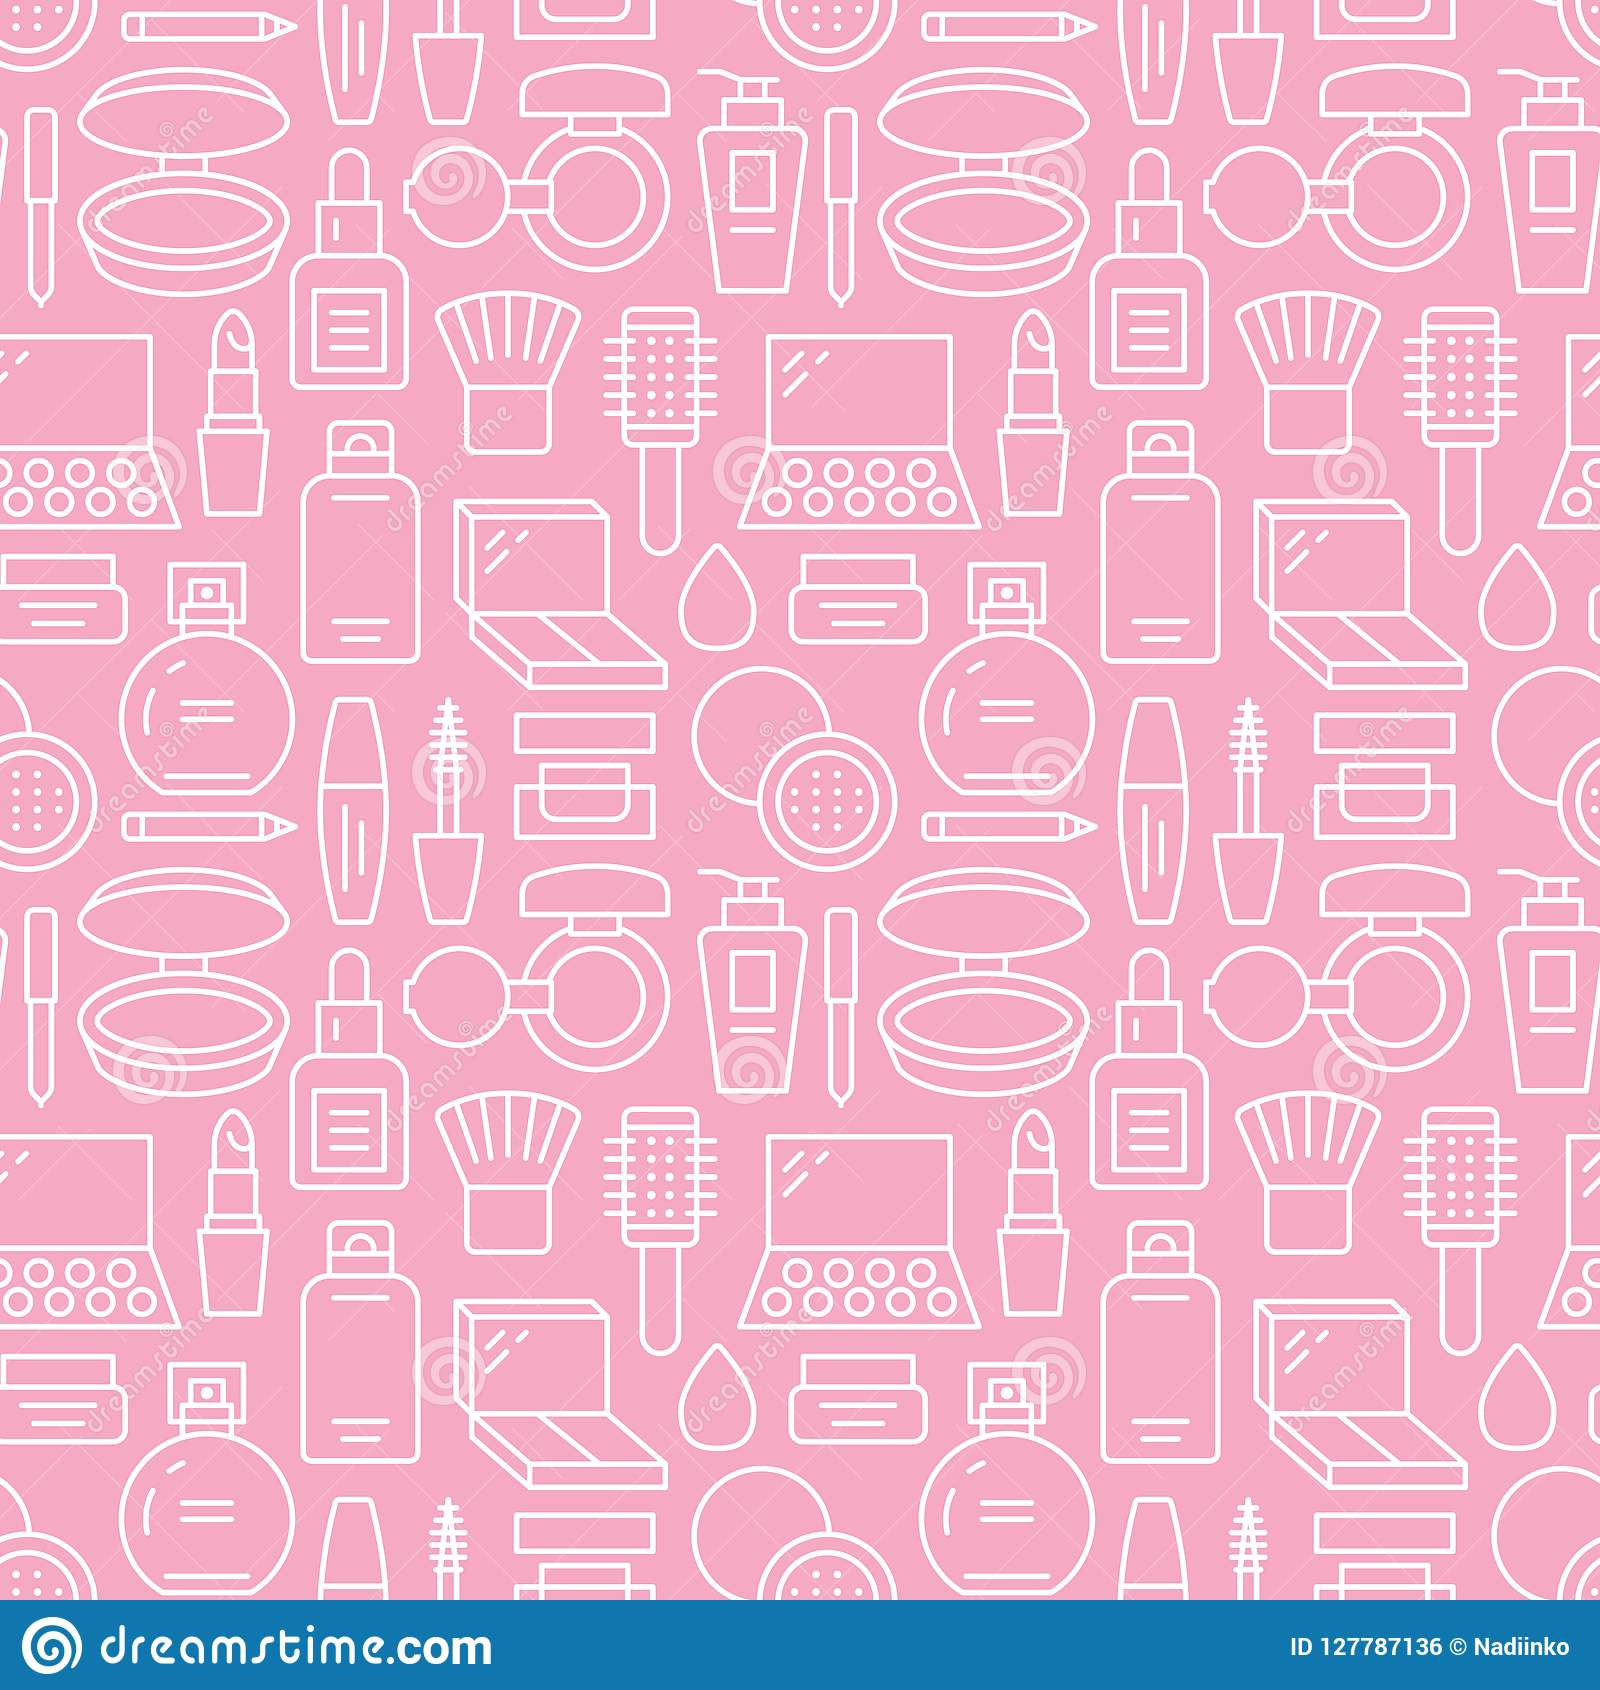 Makeup Beauty Care Pink White Seamless Pattern With Flat Line Icons Cosmetics Illustrations Of Lipstick Mascara Stock Vector Illustration Of Background Foundation 127787136